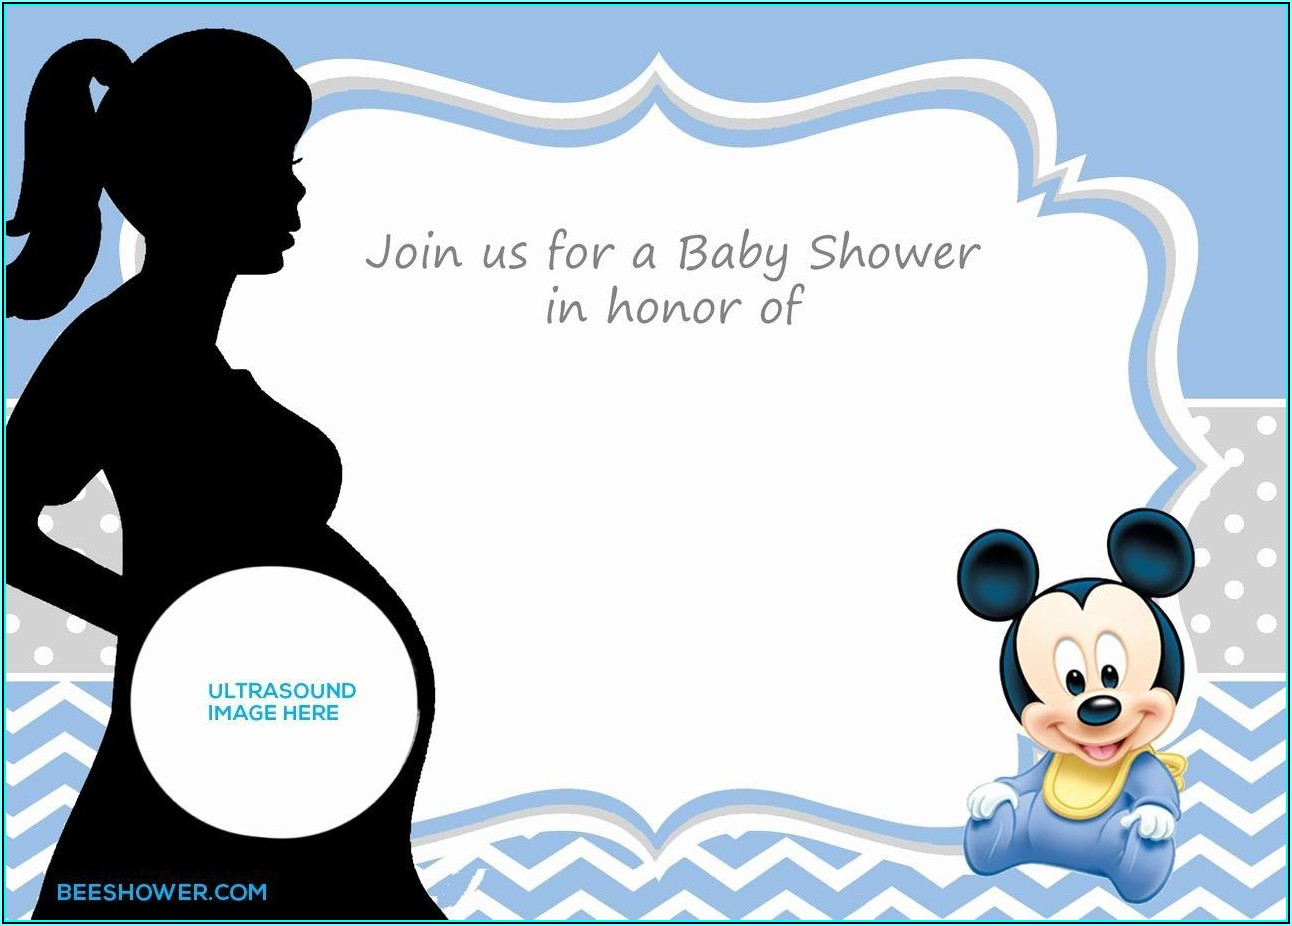 Ultrasound Baby Shower Invitation Template Free